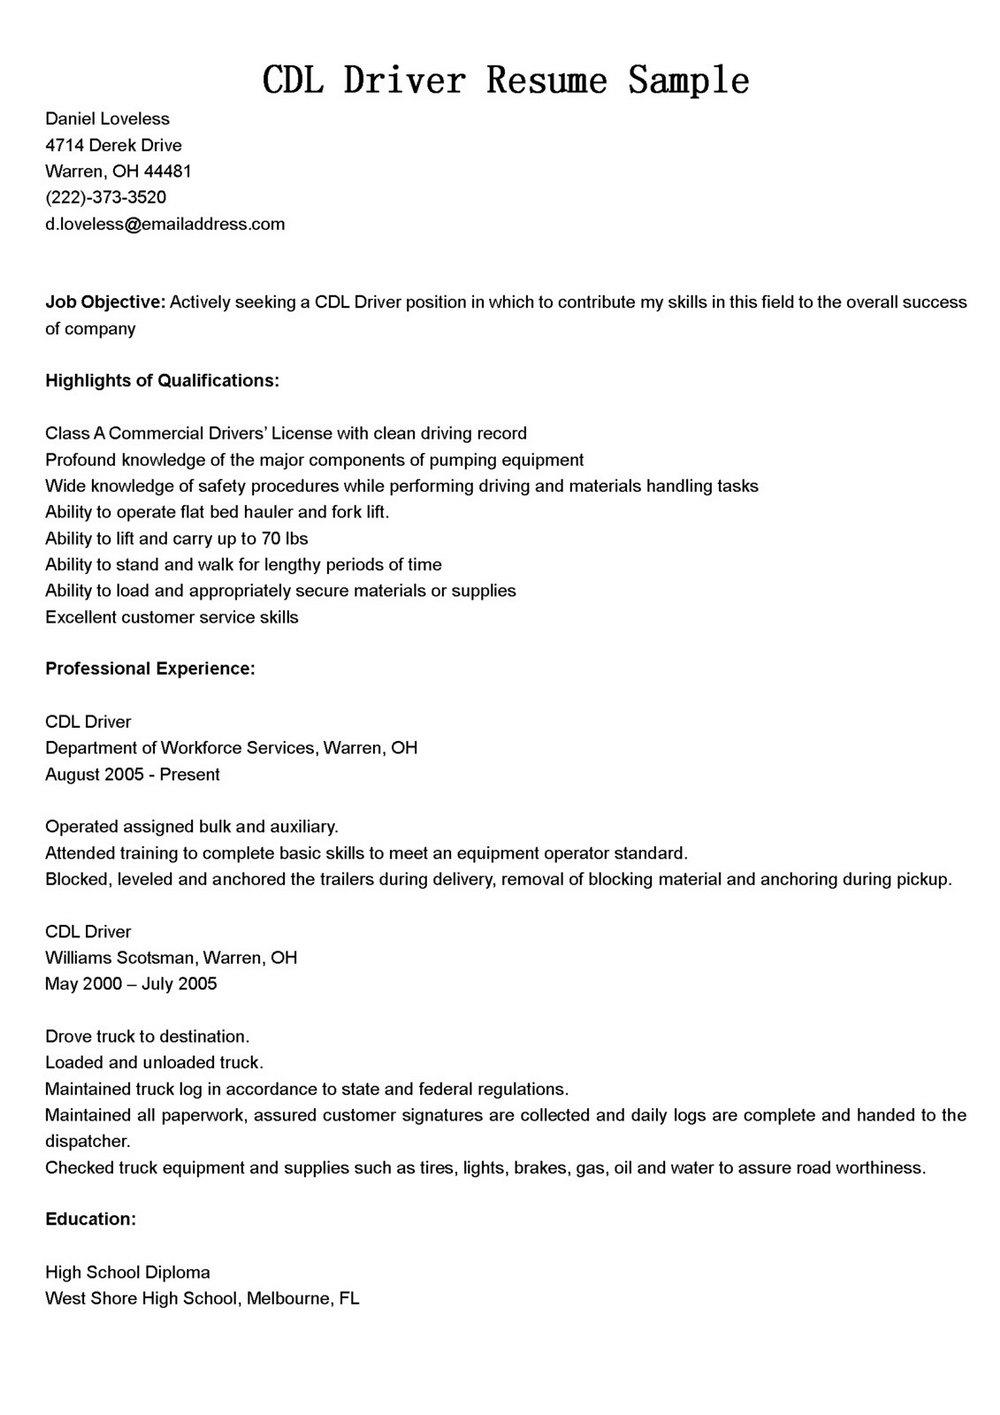 Sample Resume For Cdl Truck Drivers